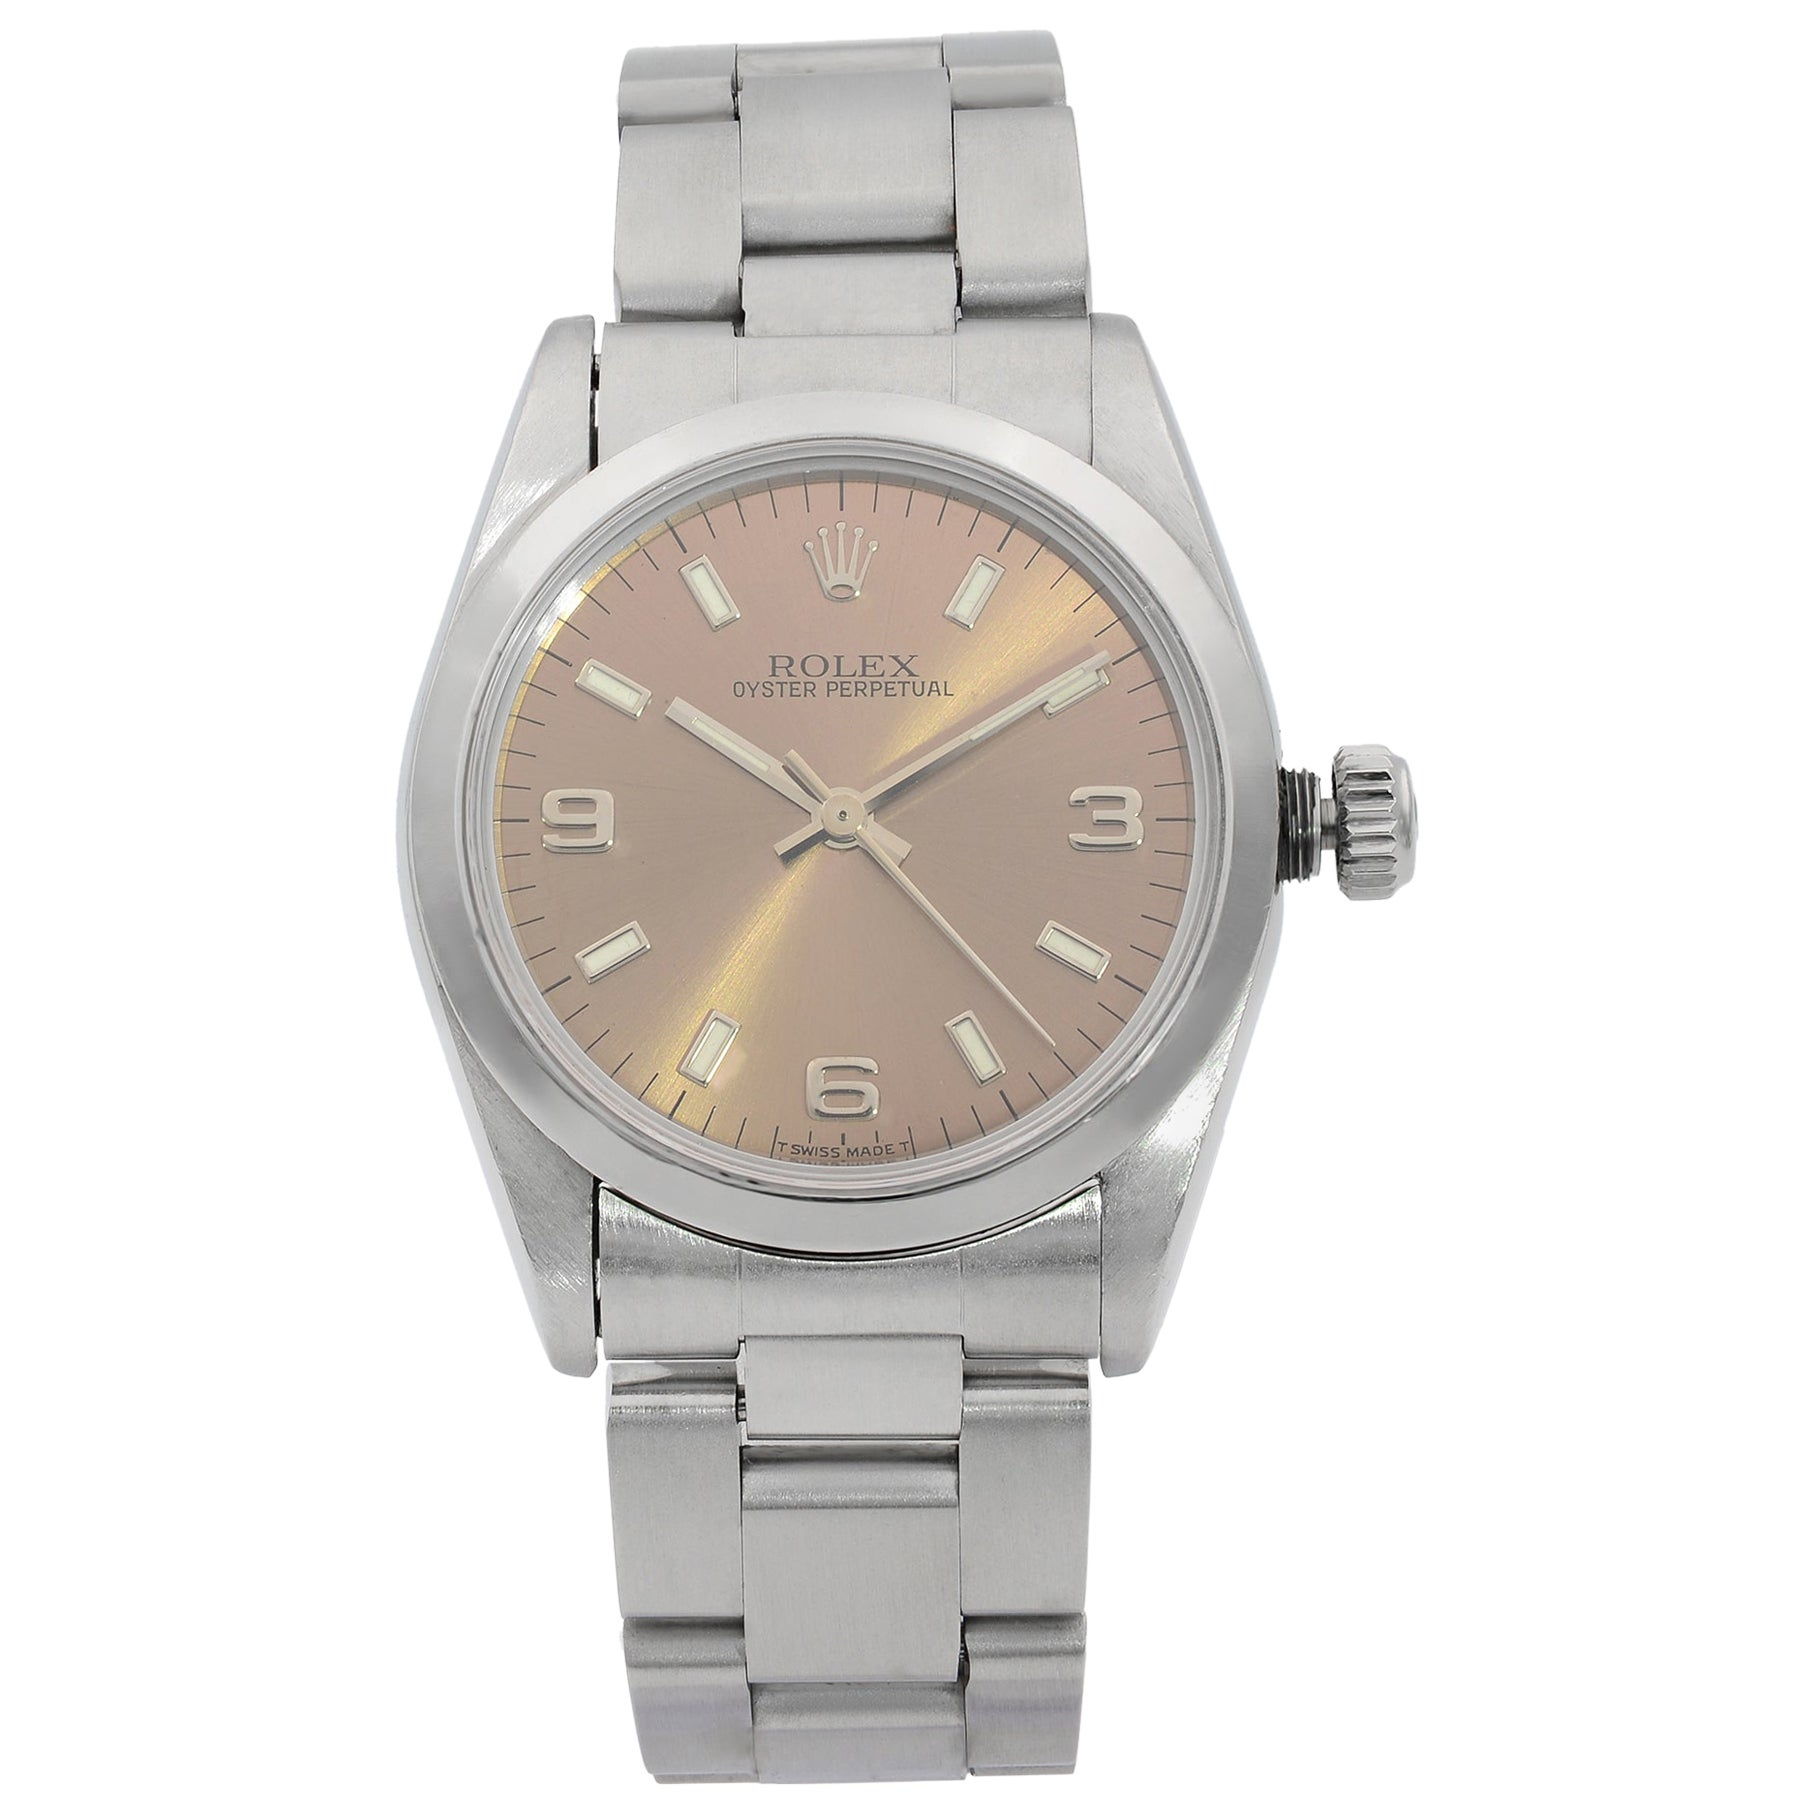 Rolex Oyster Perpetual Stainless Steel Bronze Dial Automatic Ladies Watch 67480